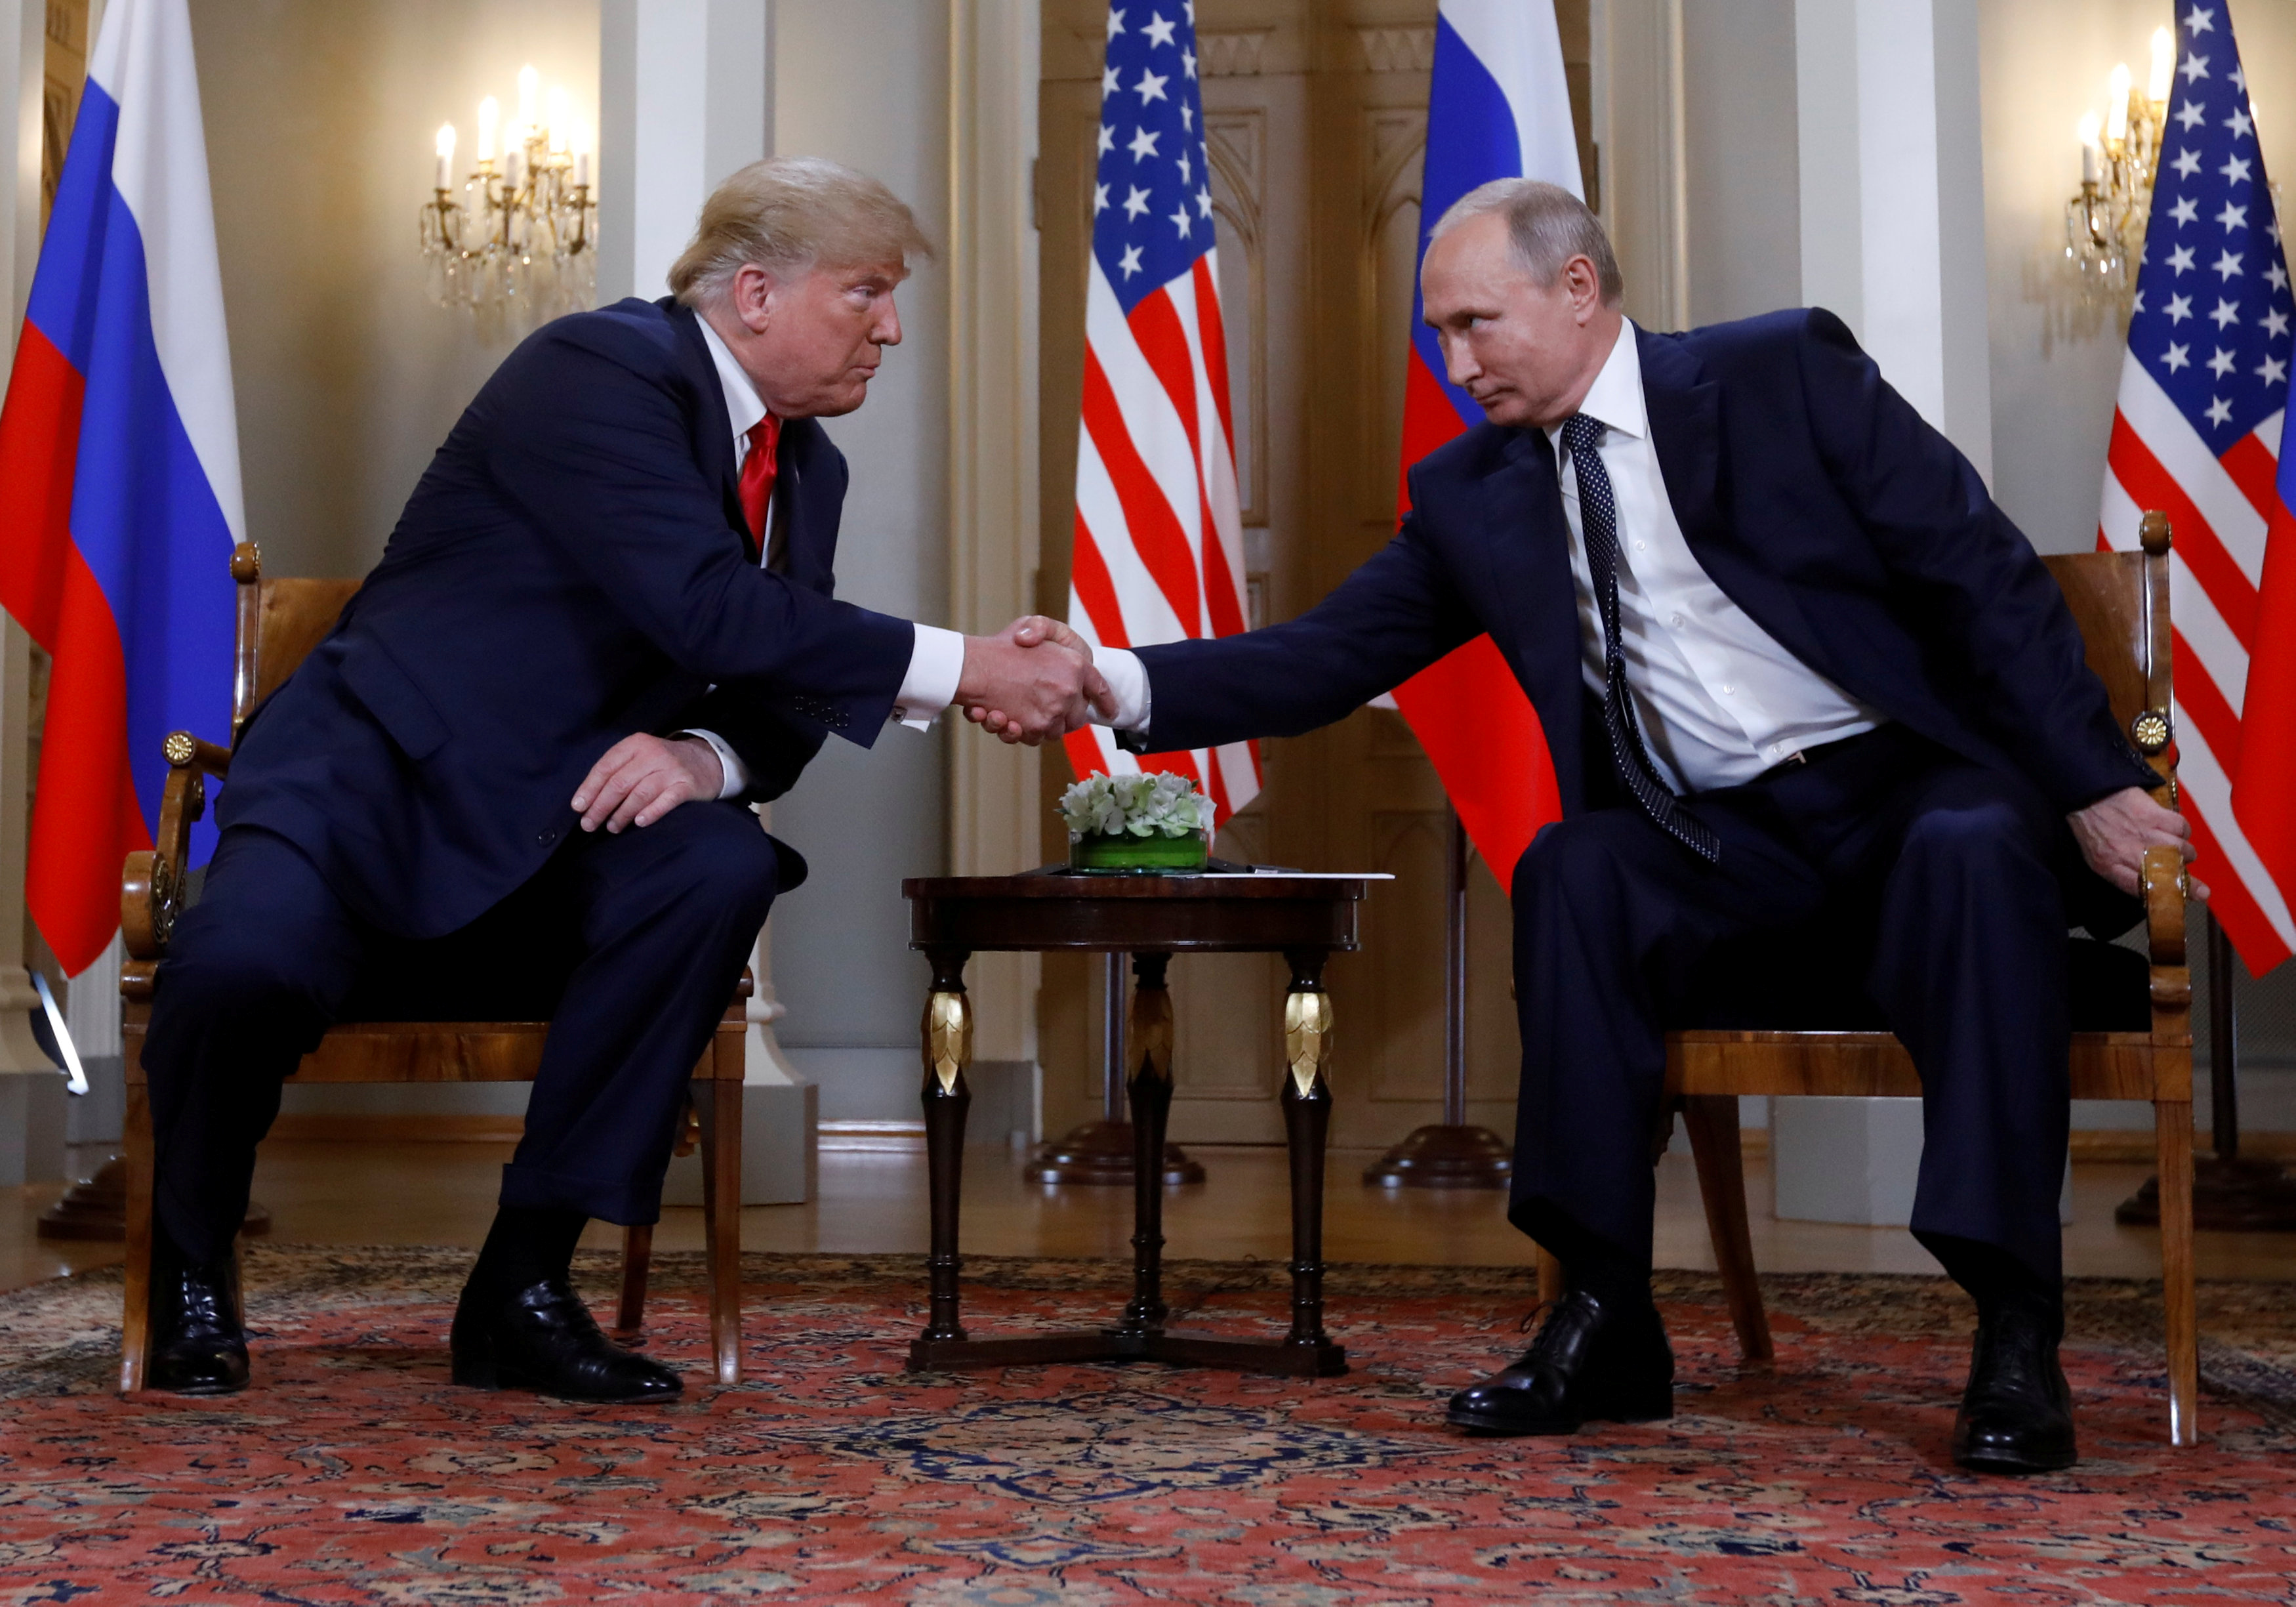 FILE PHOTO: U.S. President Donald Trump and Russia's President Vladimir Putin shake hands as they meet in Helsinki, Finland July 16, 2018. REUTERS/Kevin Lamarque